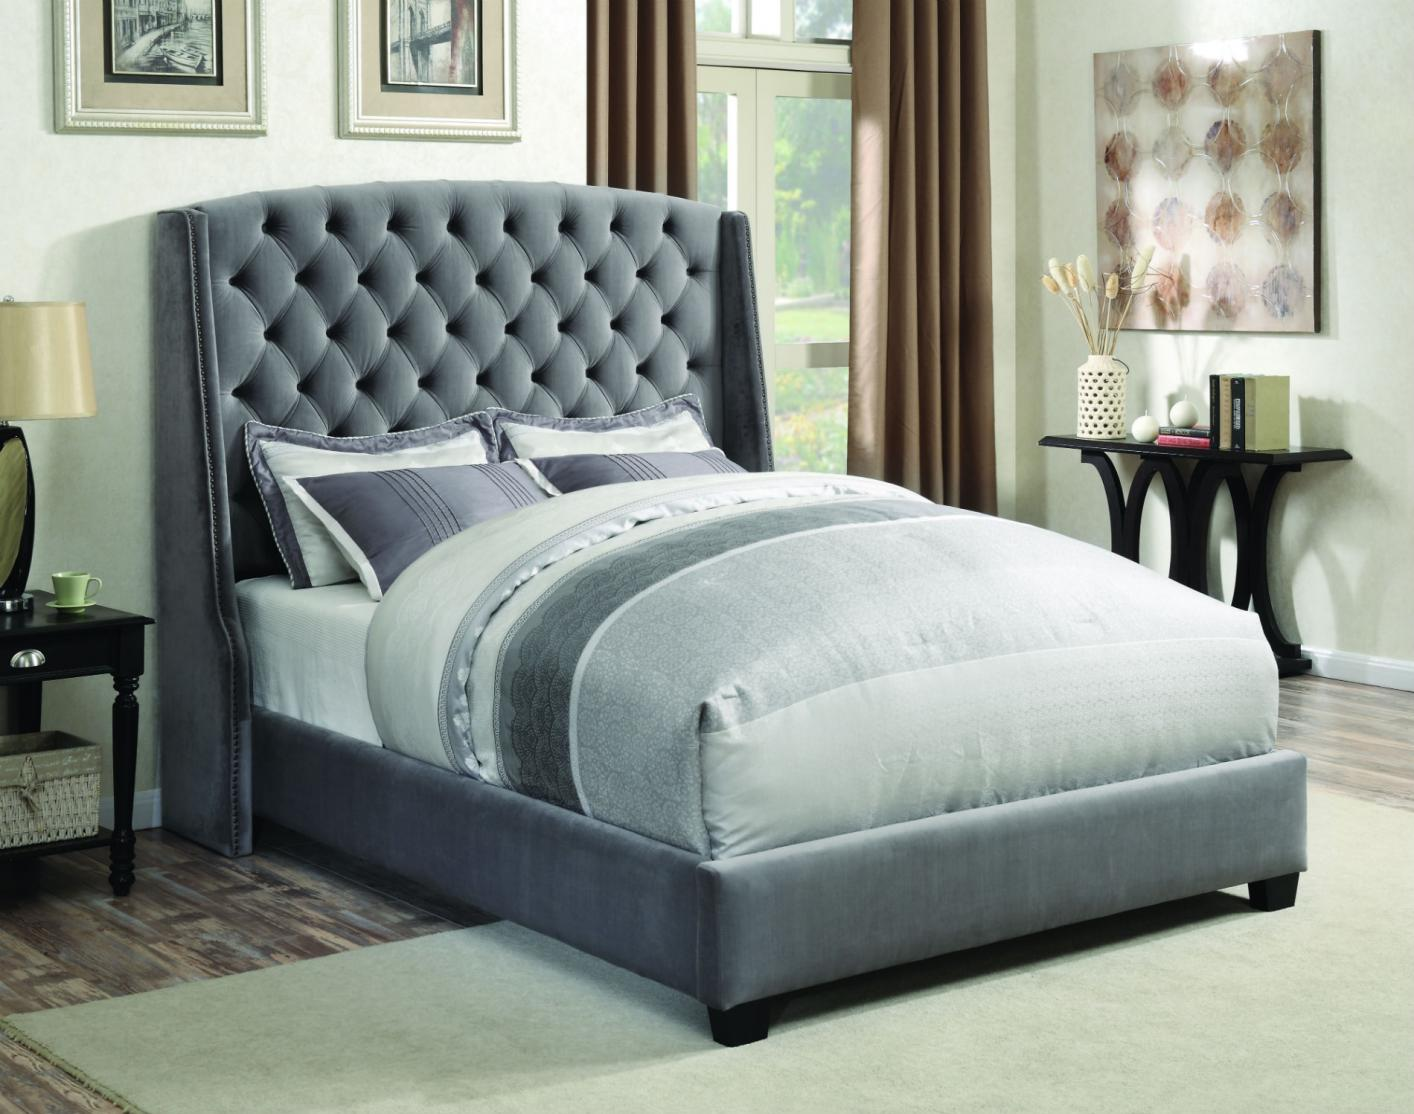 Grey Fabric Queen Size Bed Steal A Sofa Furniture Outlet